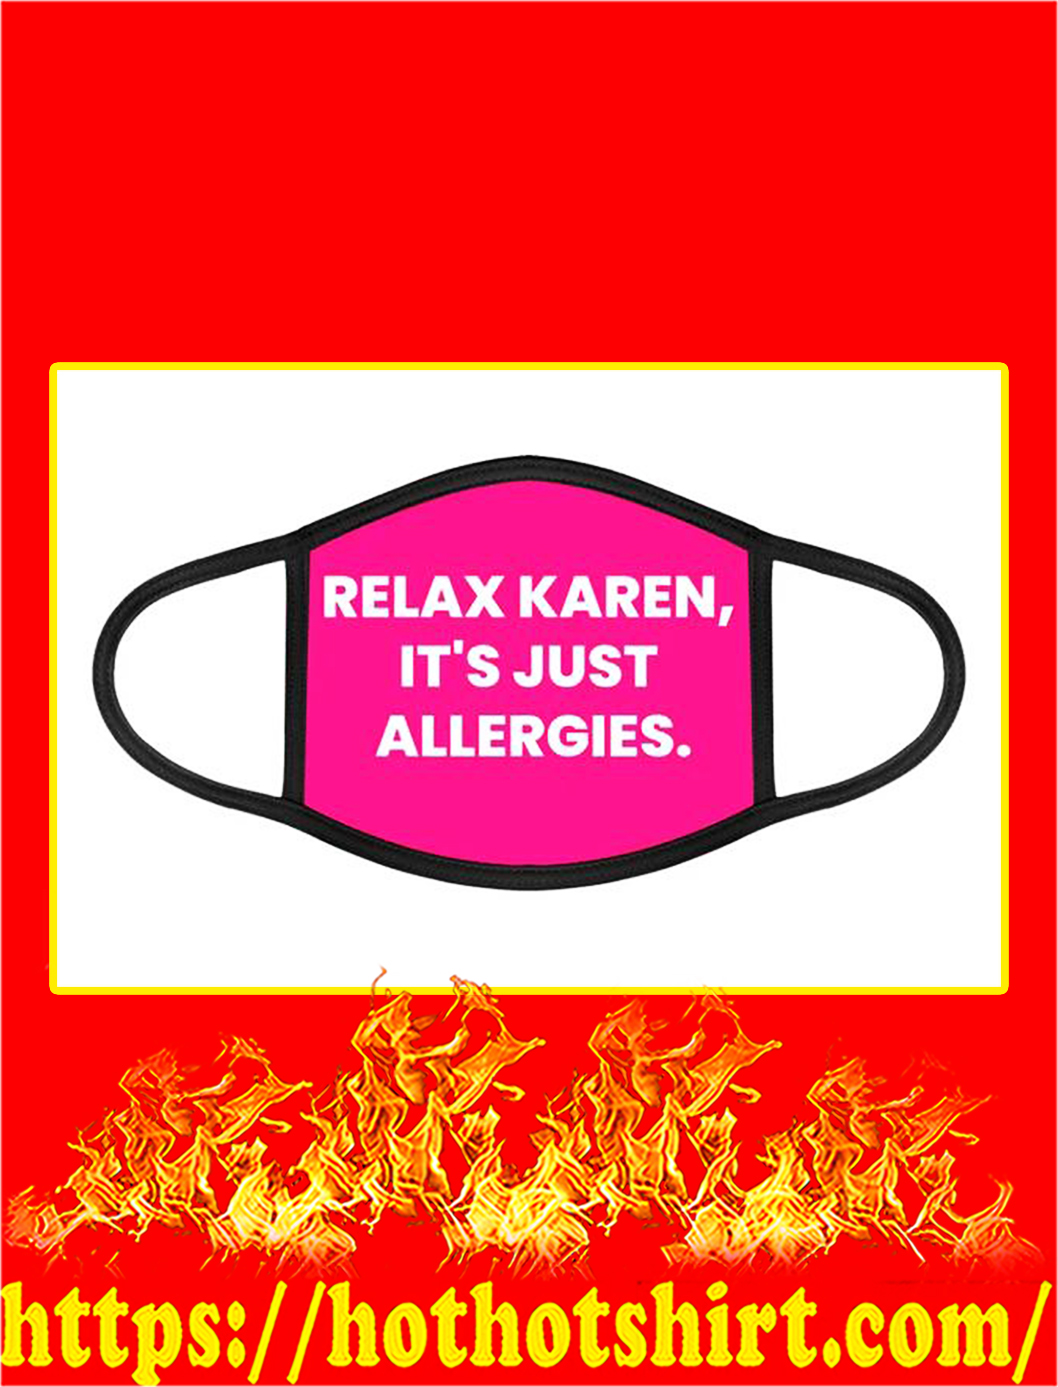 Relax karen it's just allergies face mask- pic 1